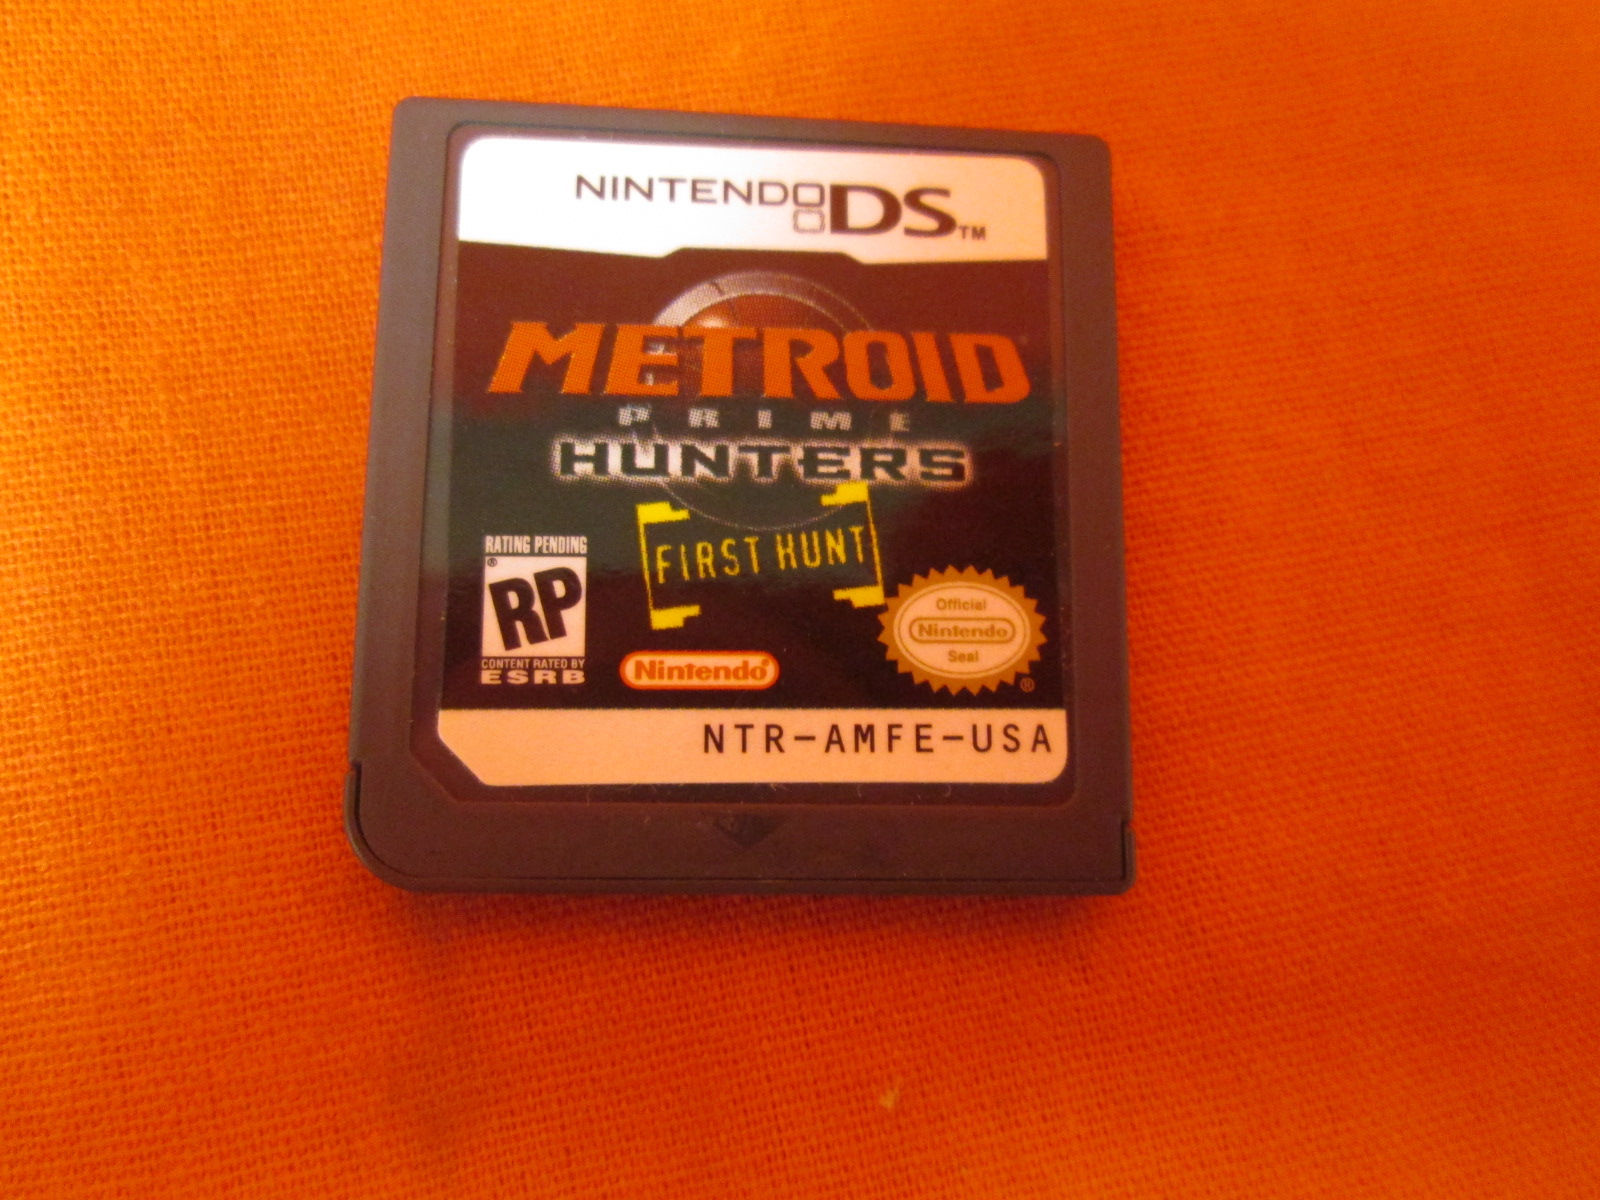 Metroid Prime Hunters First Hunt Not For Resale For Nintendo DS DSi